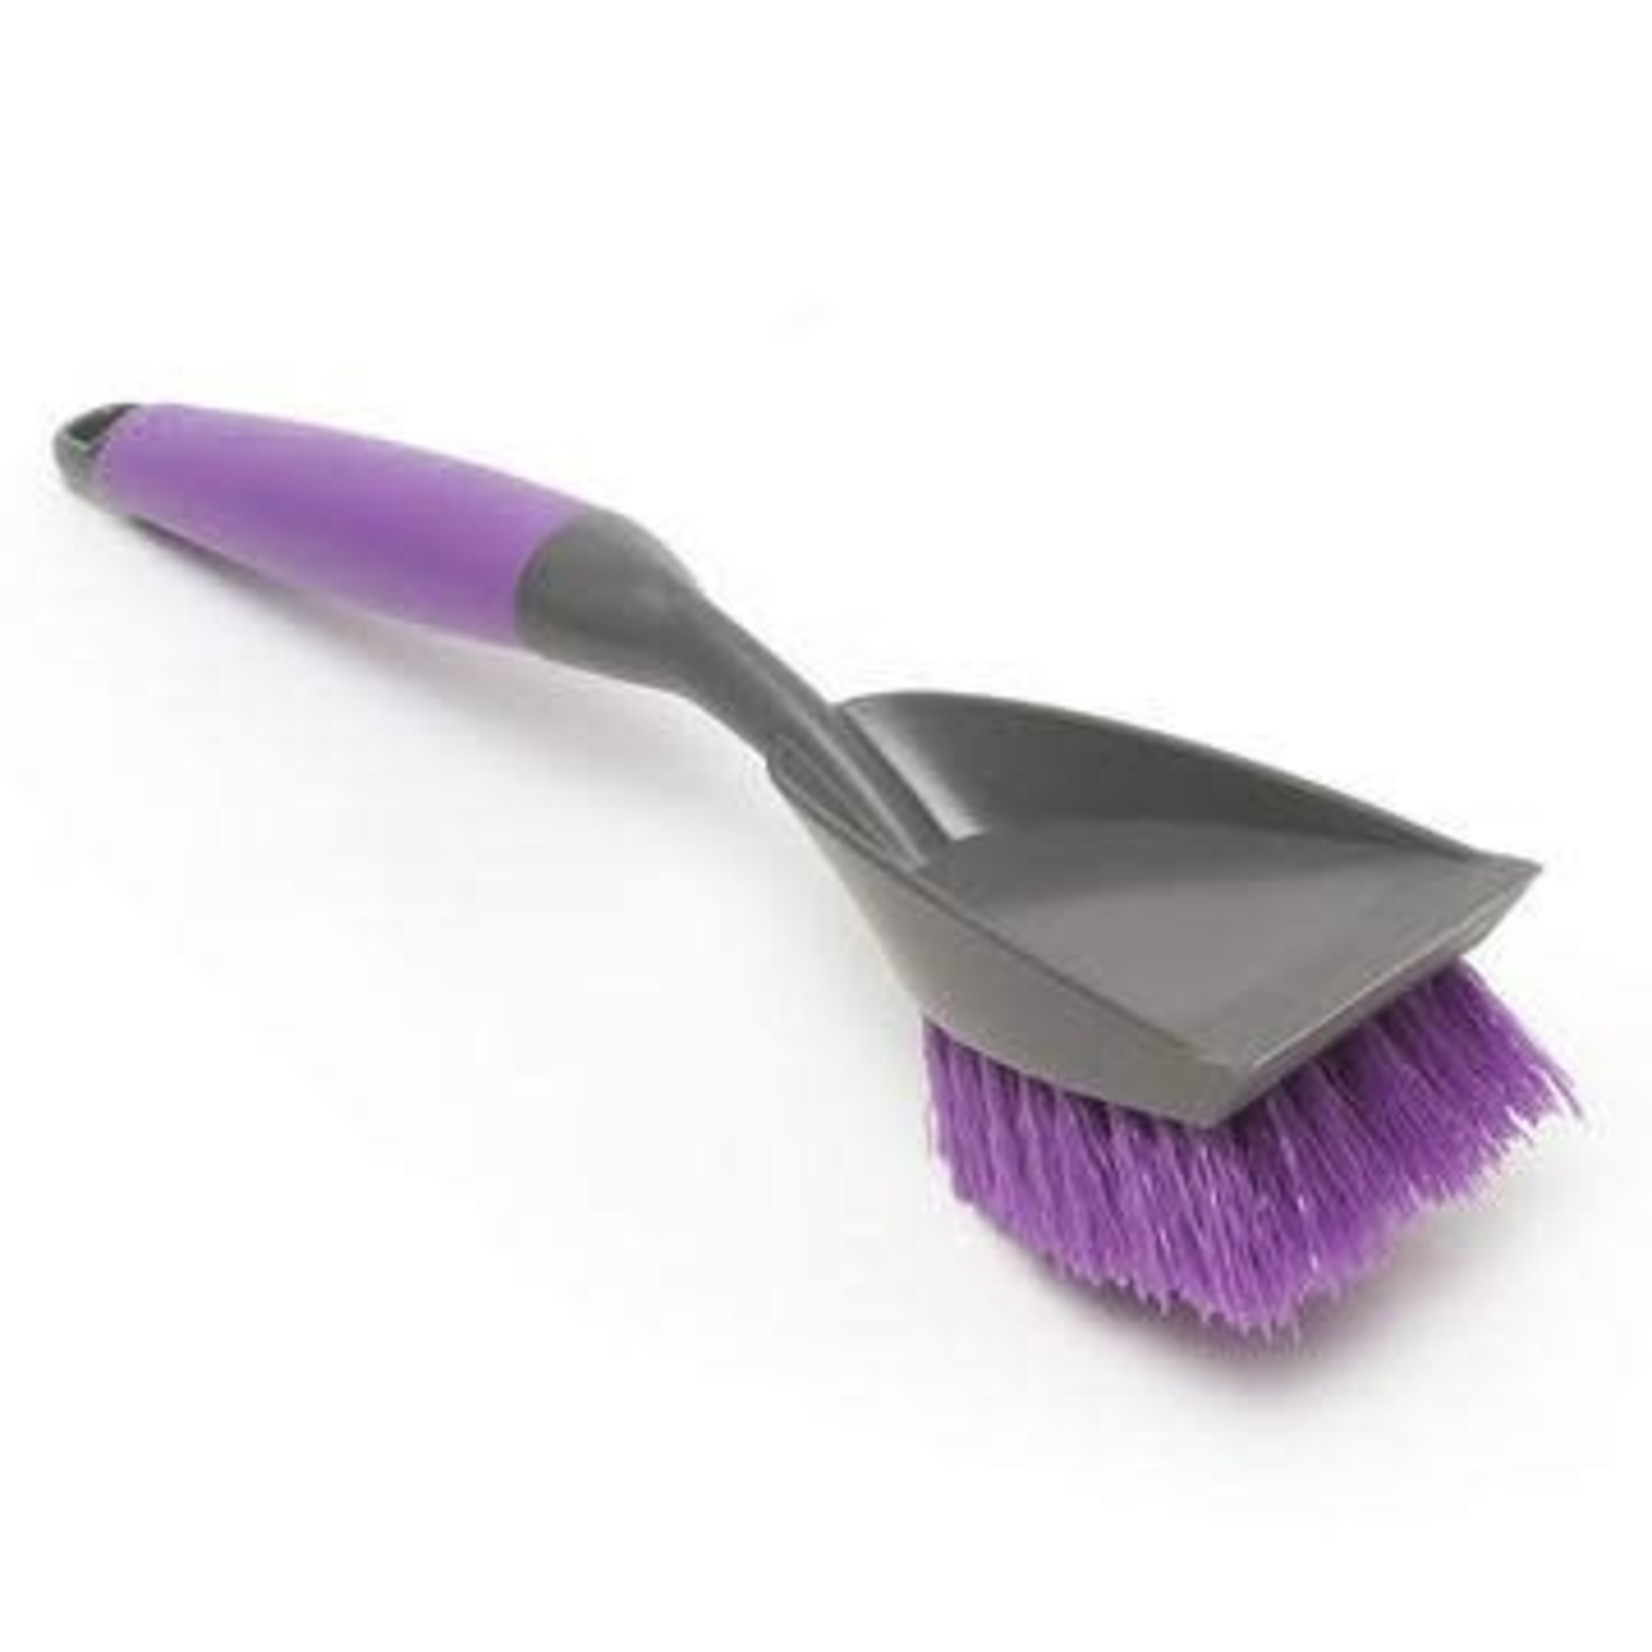 Messy Mutts Litter Box Cleaning Brush